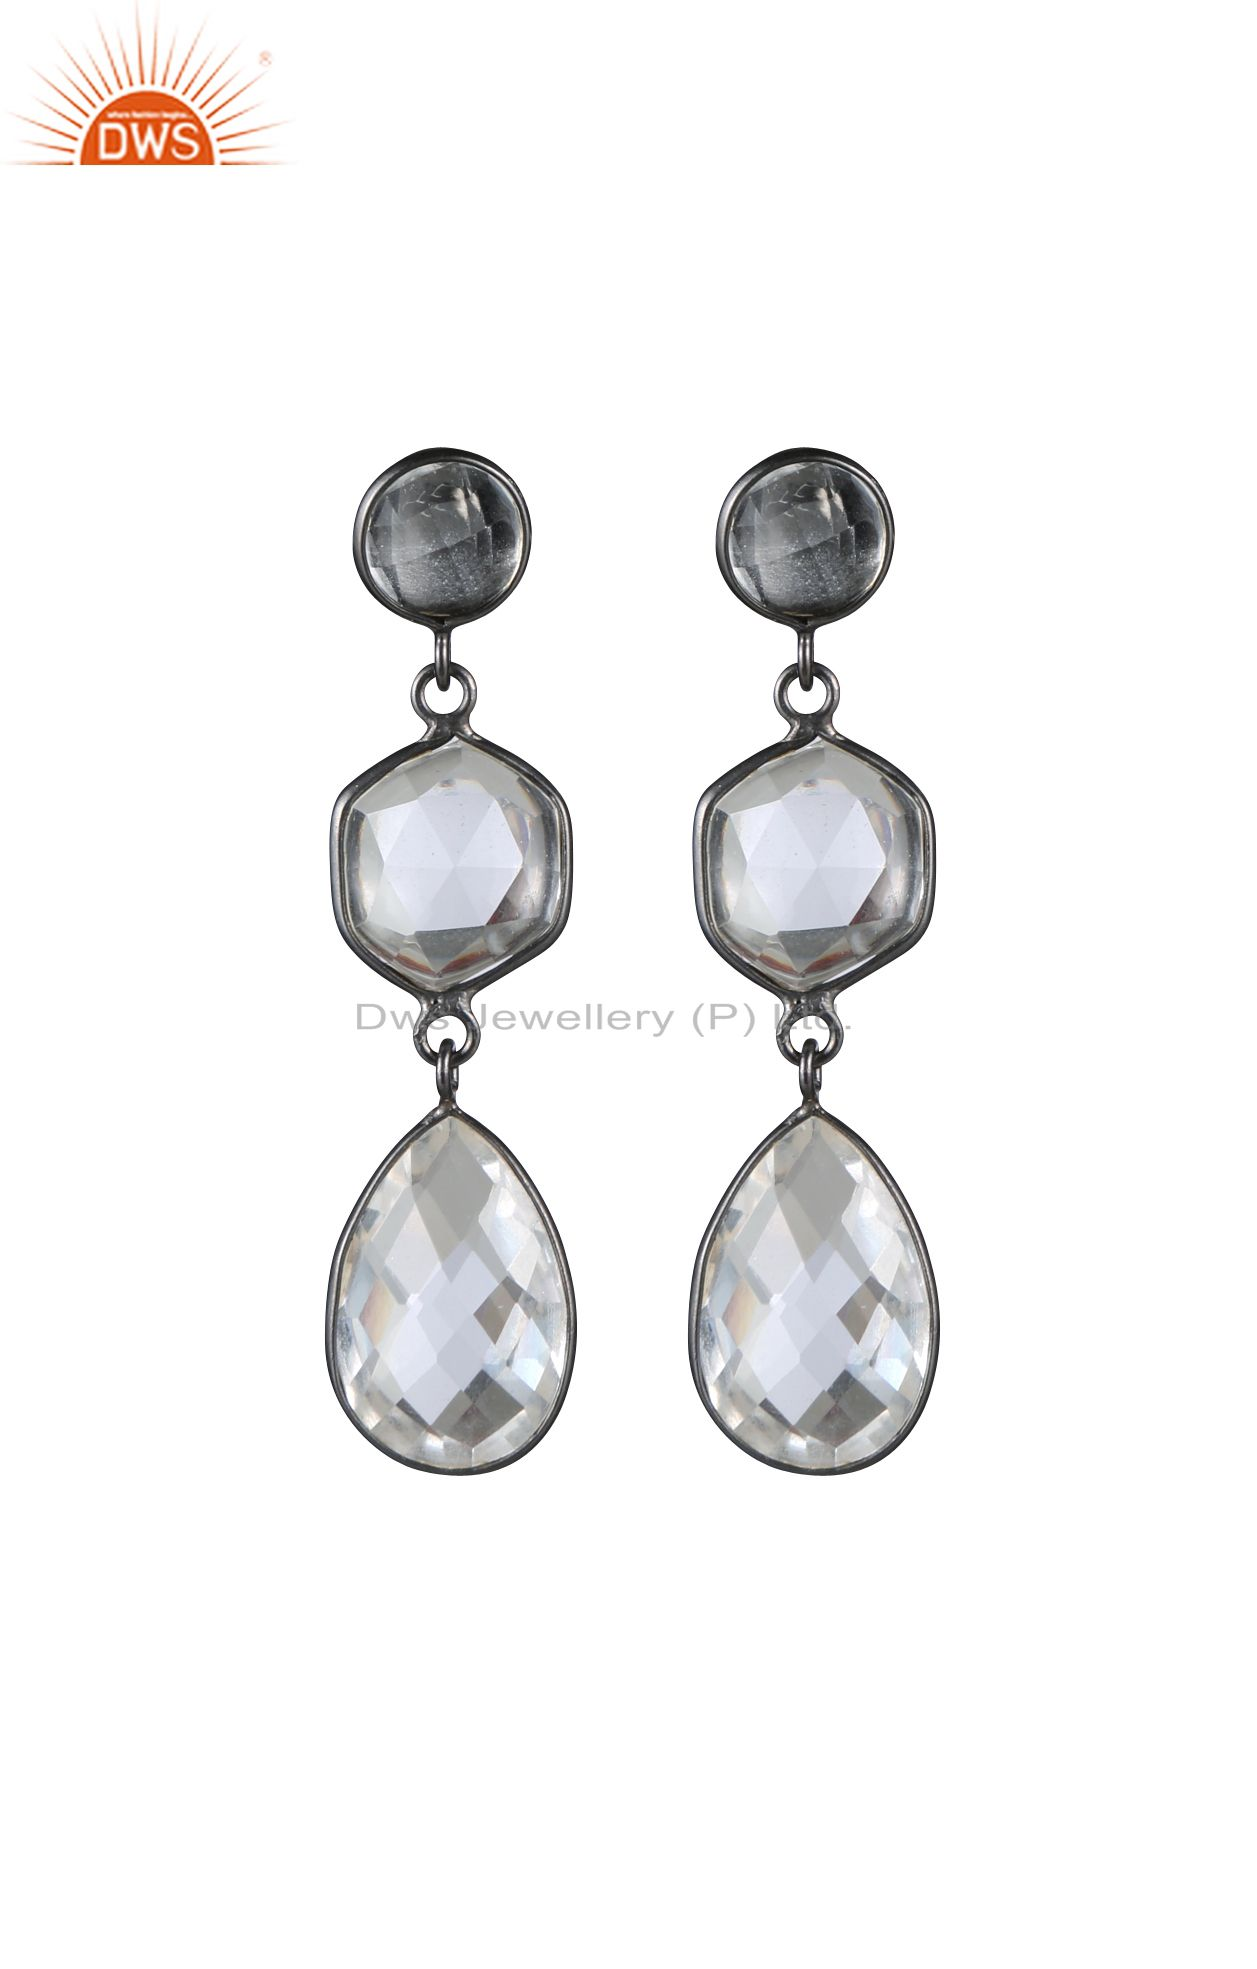 Oxidized Solid Sterling Silver Triple Crystal Quartz Bezel Set Drop Earrings